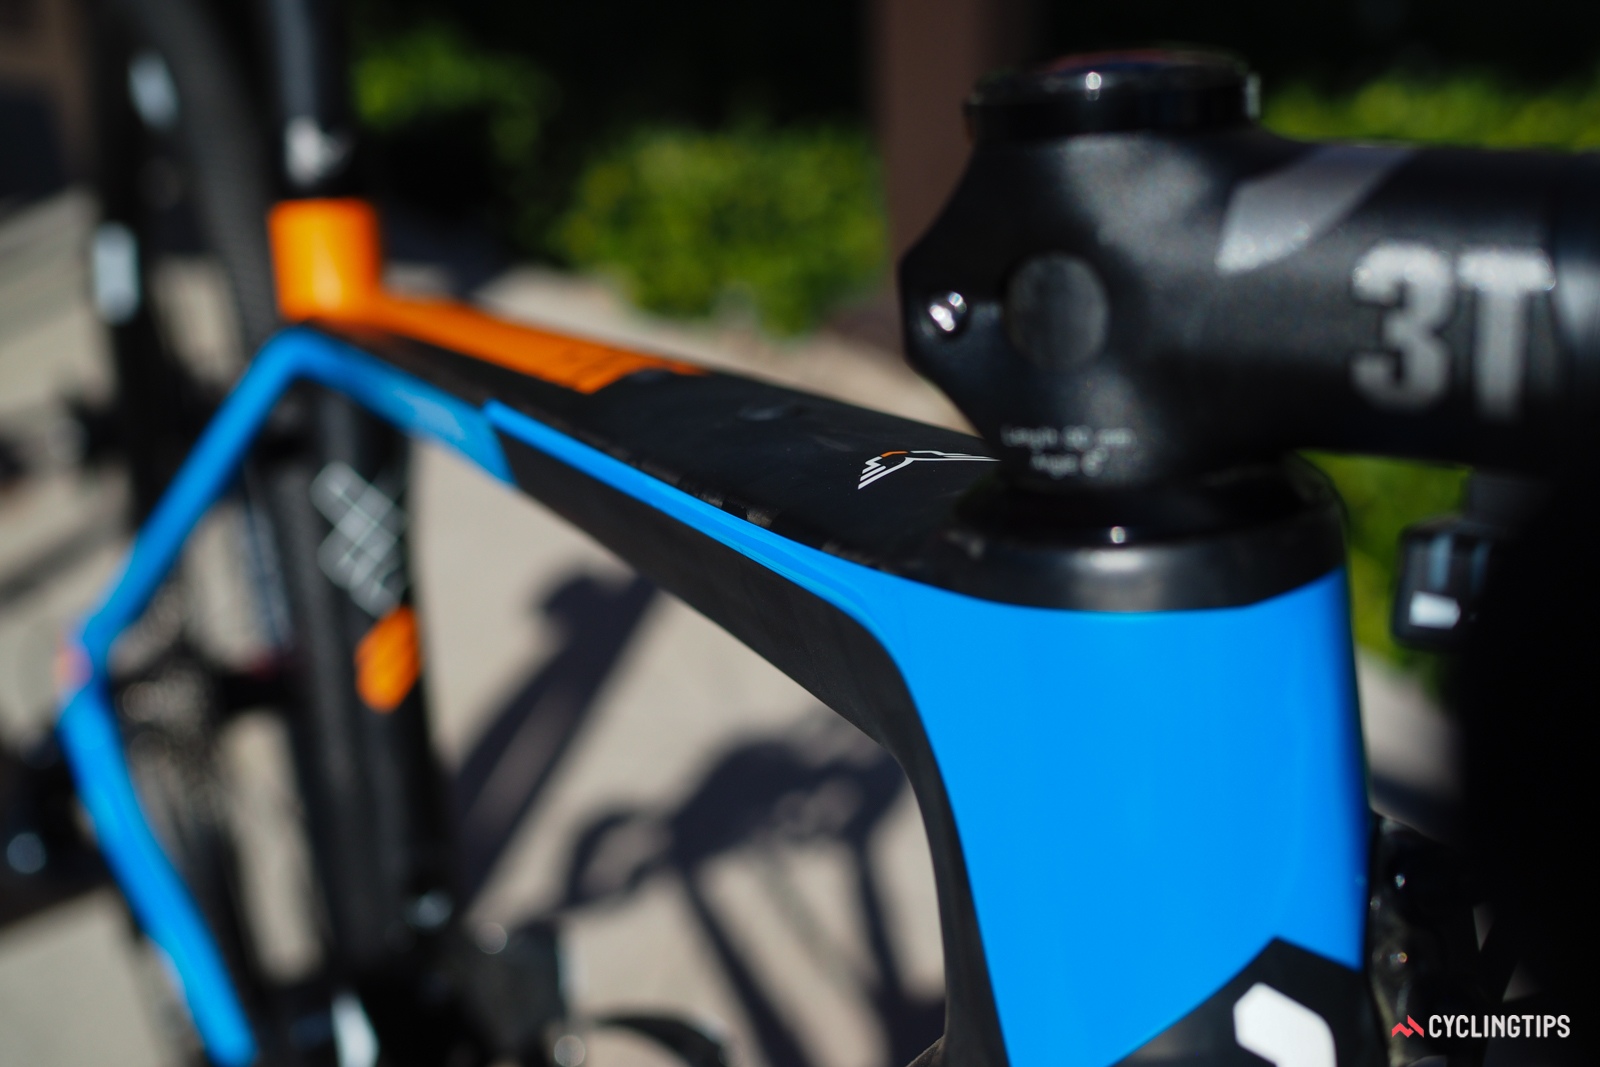 Felt says the top tube shape was specifically chosen to promote frame flex in the vertical plane to help take the sting out of bumps.